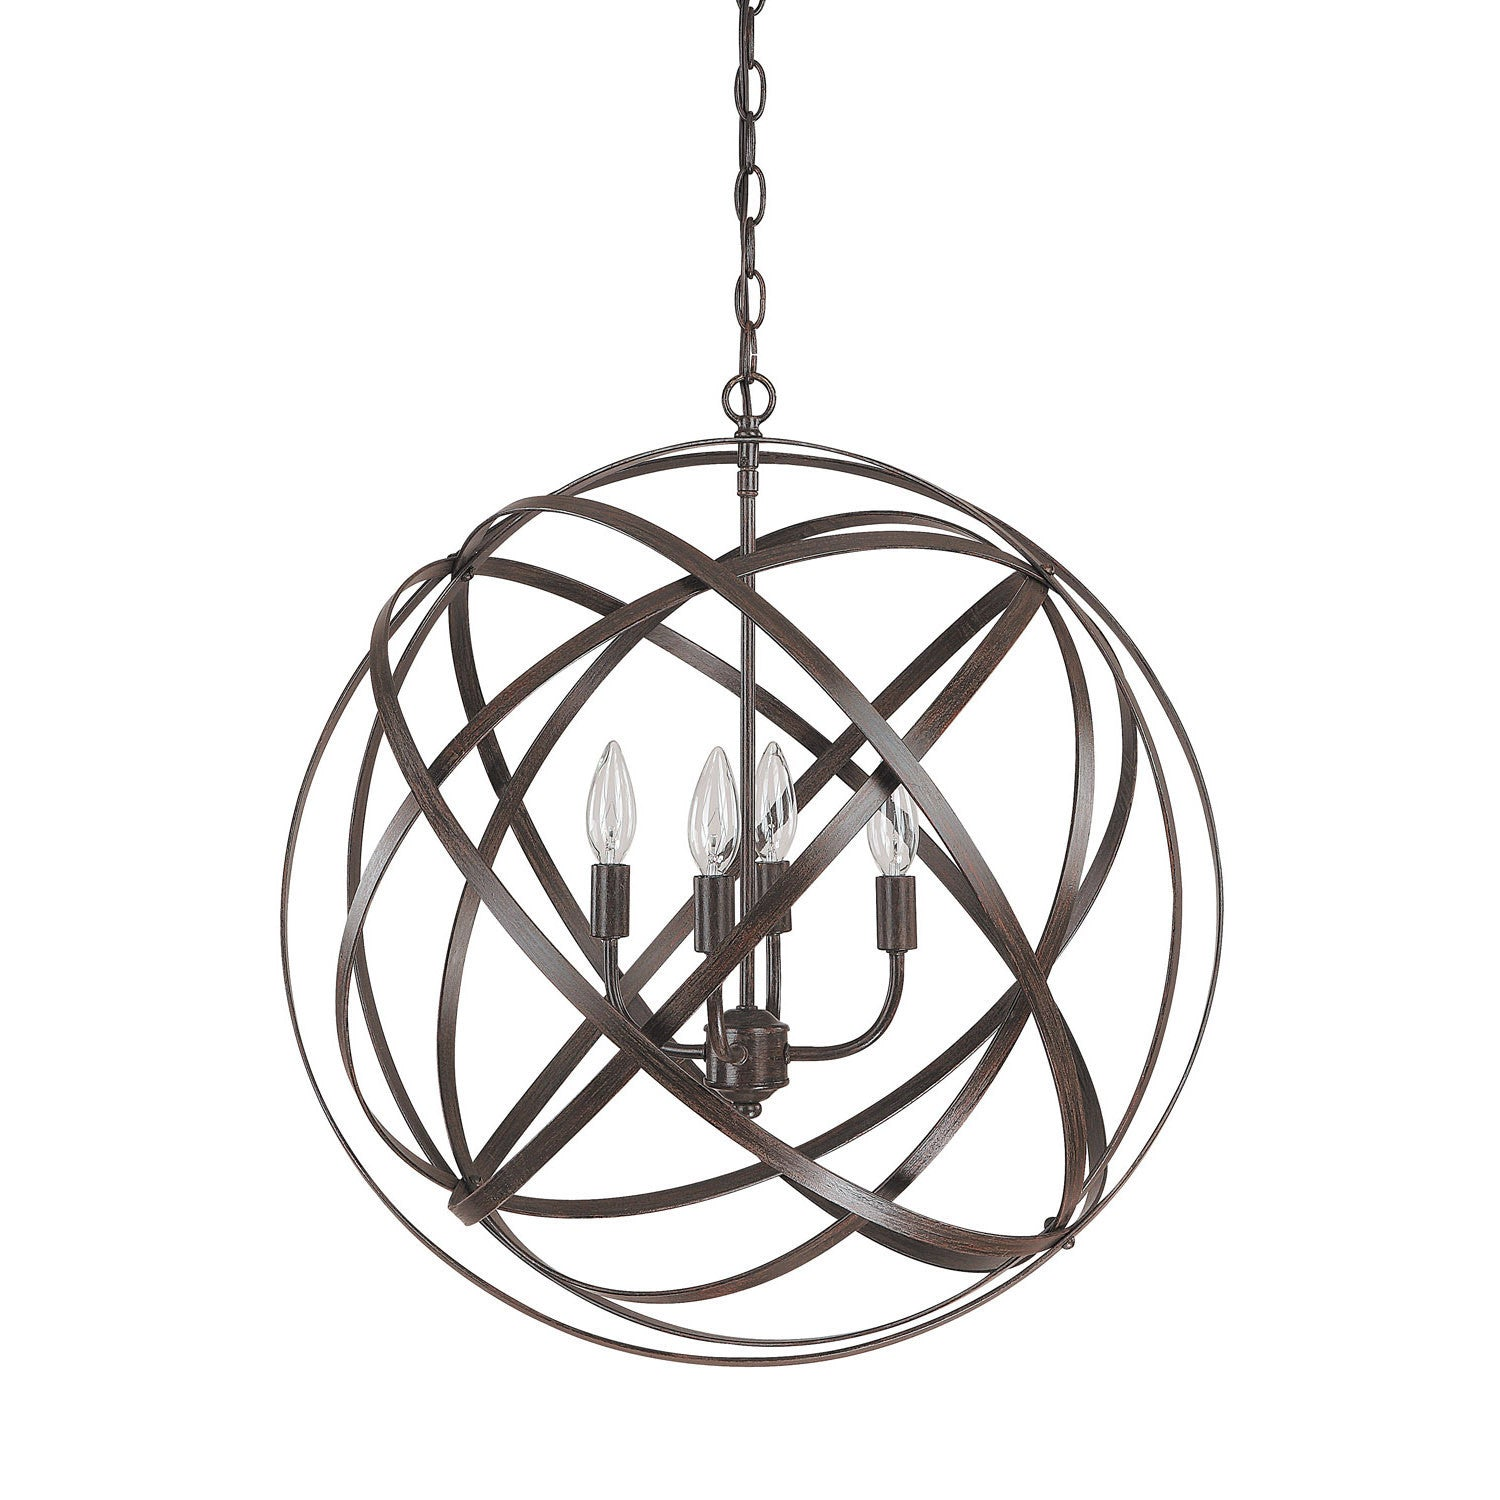 Axis Bronze Orb Chandelier by Capital Lighting